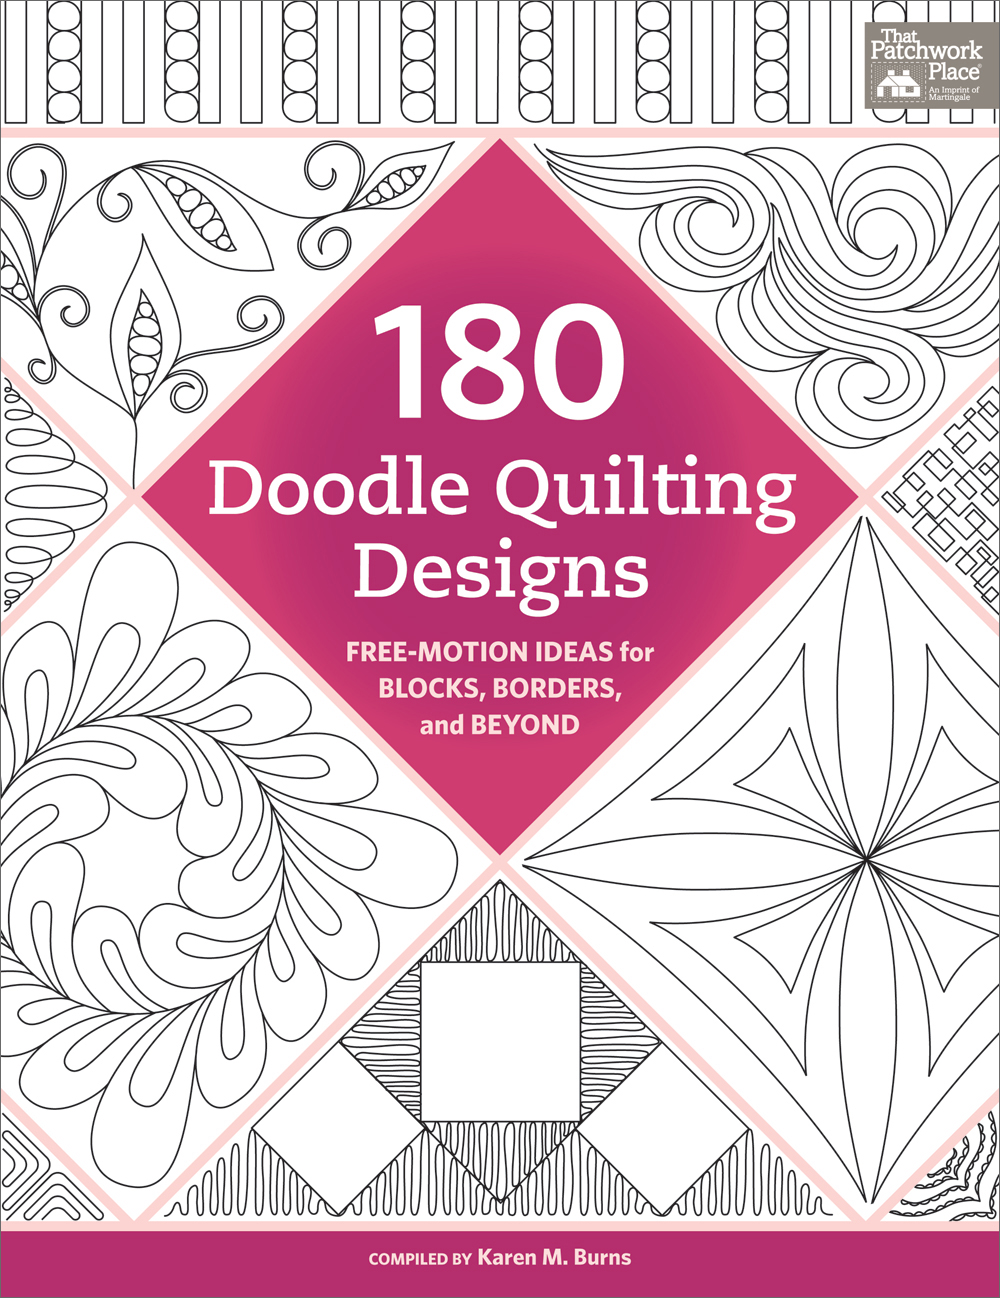 Trace - doodle - free-motion quilt! 180 doodle patterns to try (+ ... : free motion quilt designs - Adamdwight.com